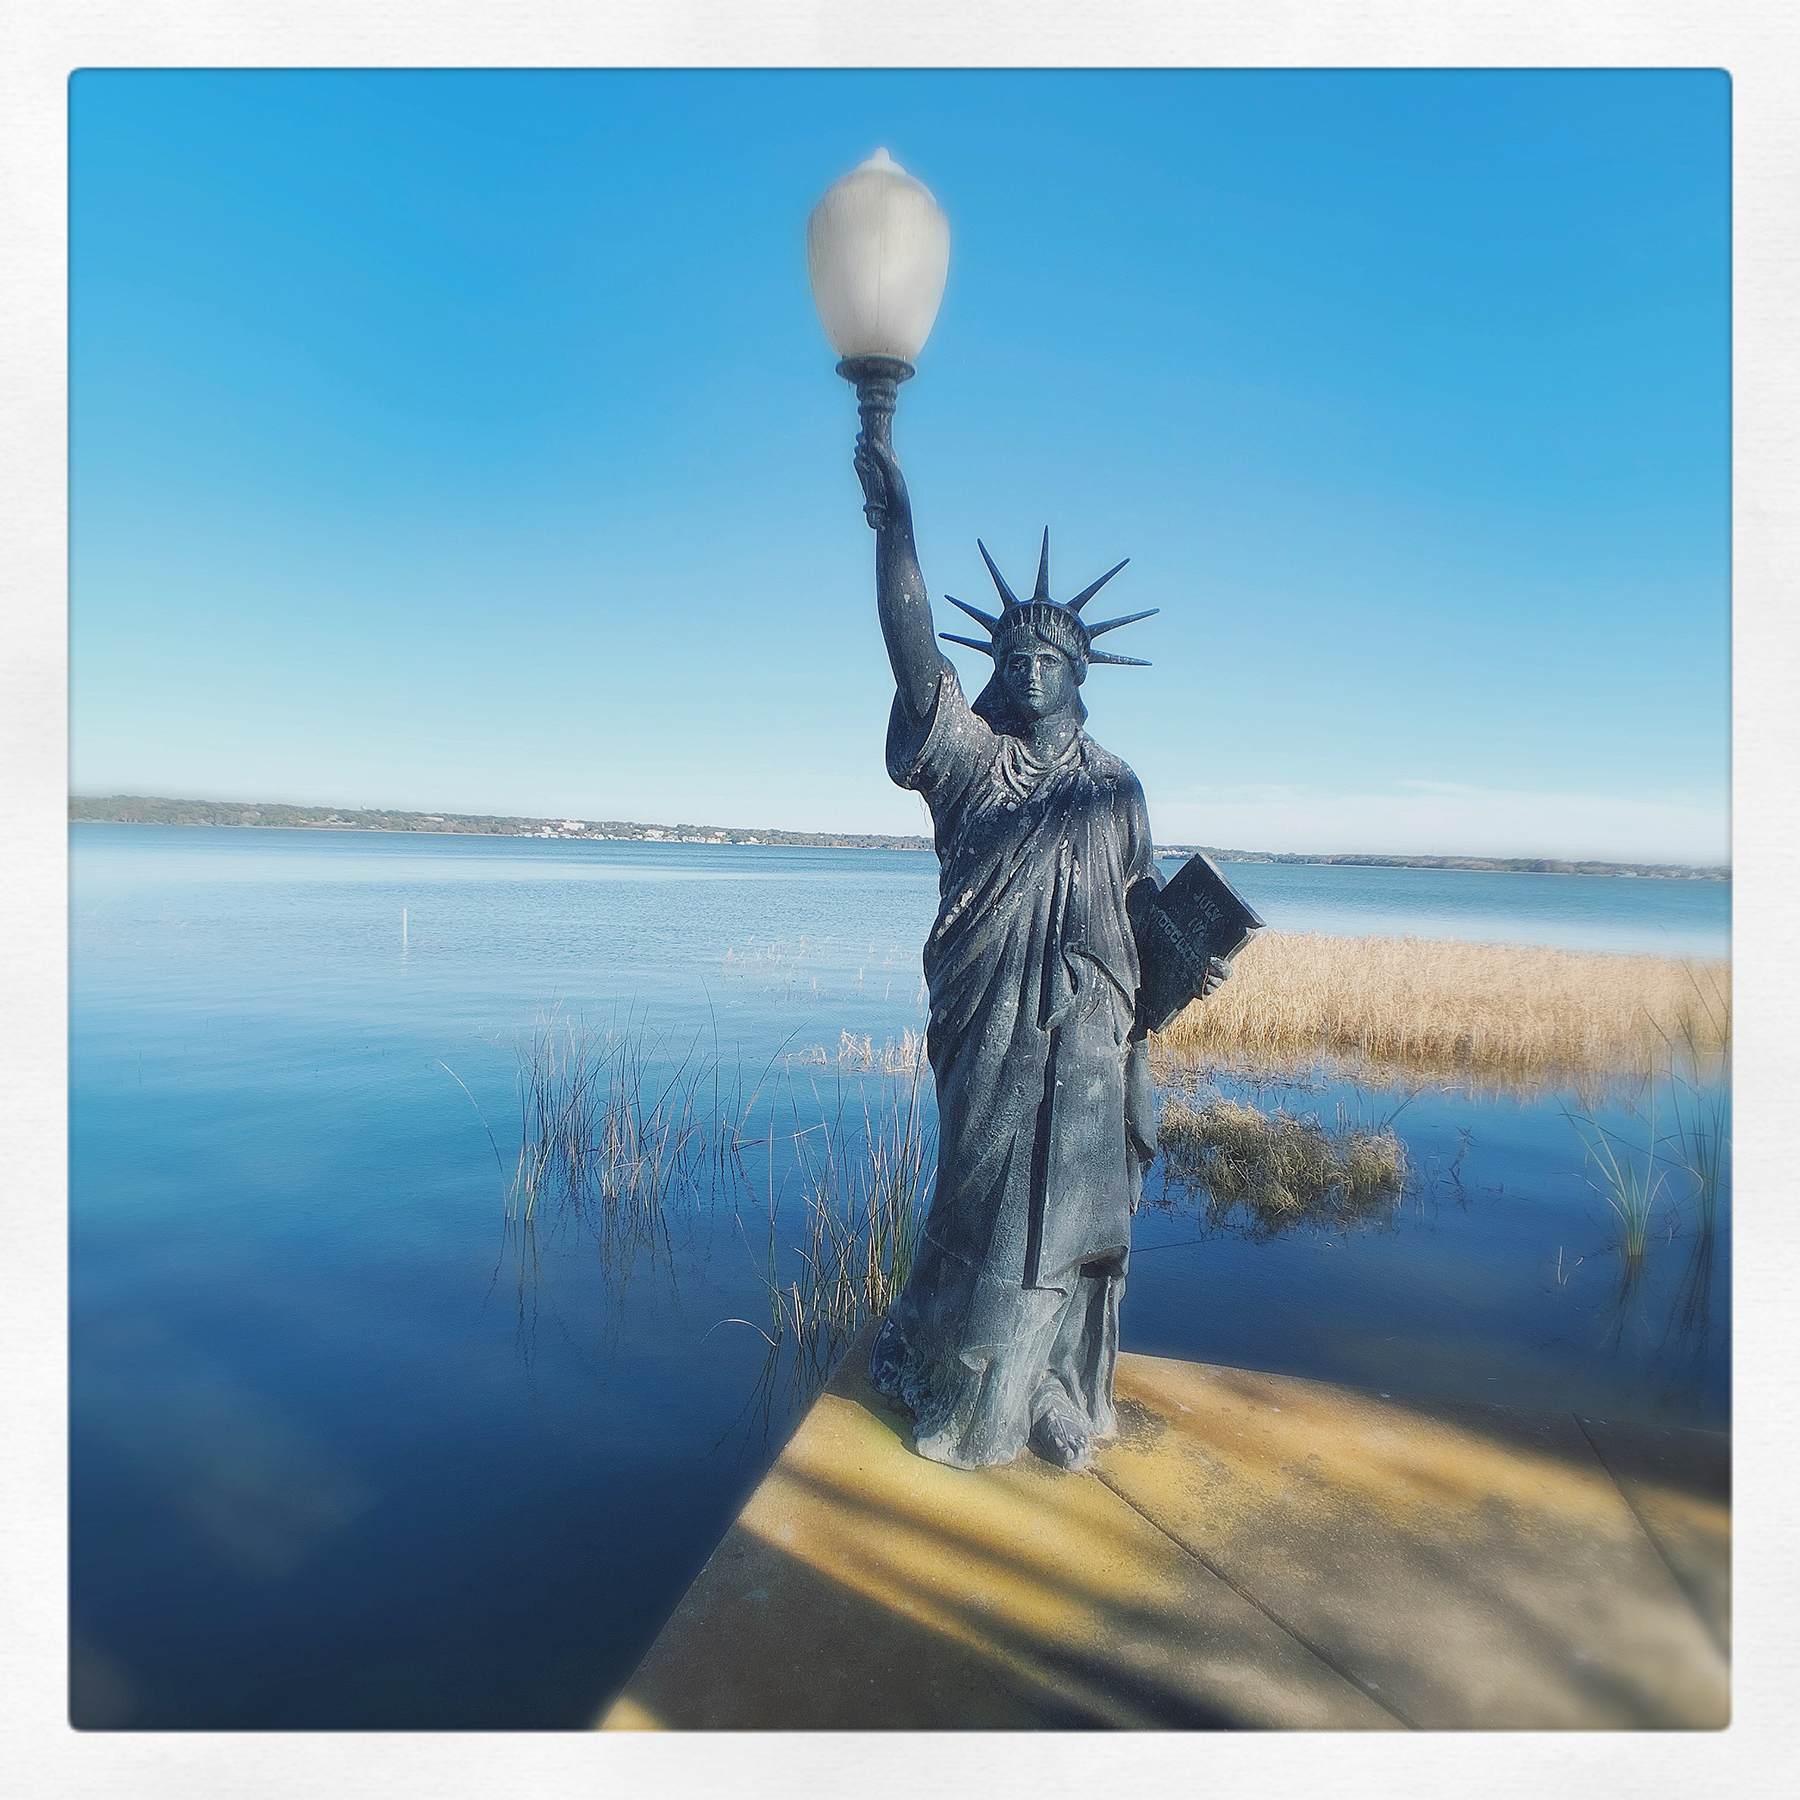 Statue-of-Liberty-relocated-to-Lake-Dora_lantern-replaces-flame